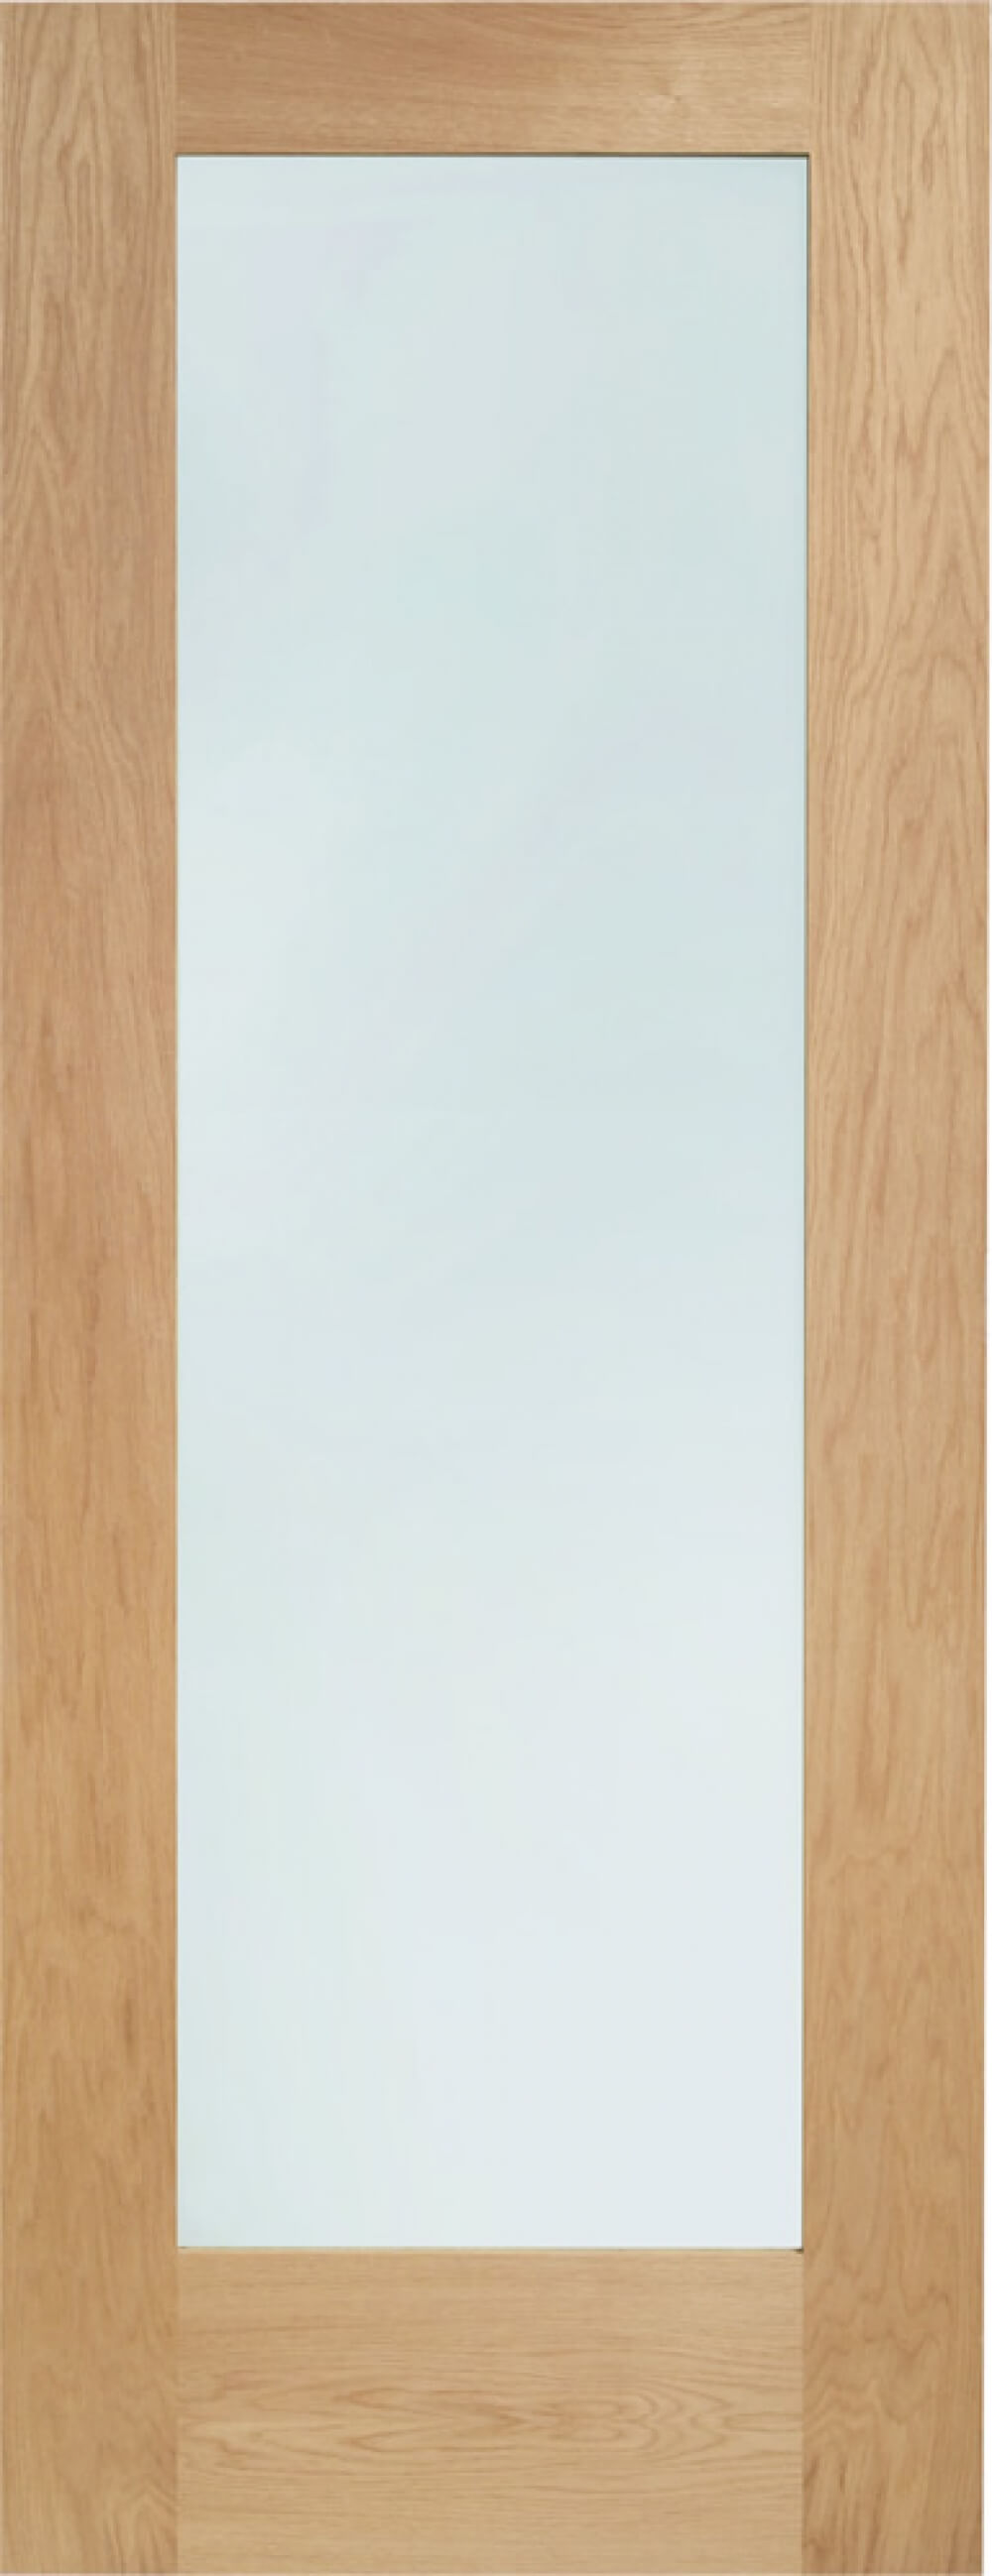 Pattern 10 Oak Glazed Door - PREFINISHED